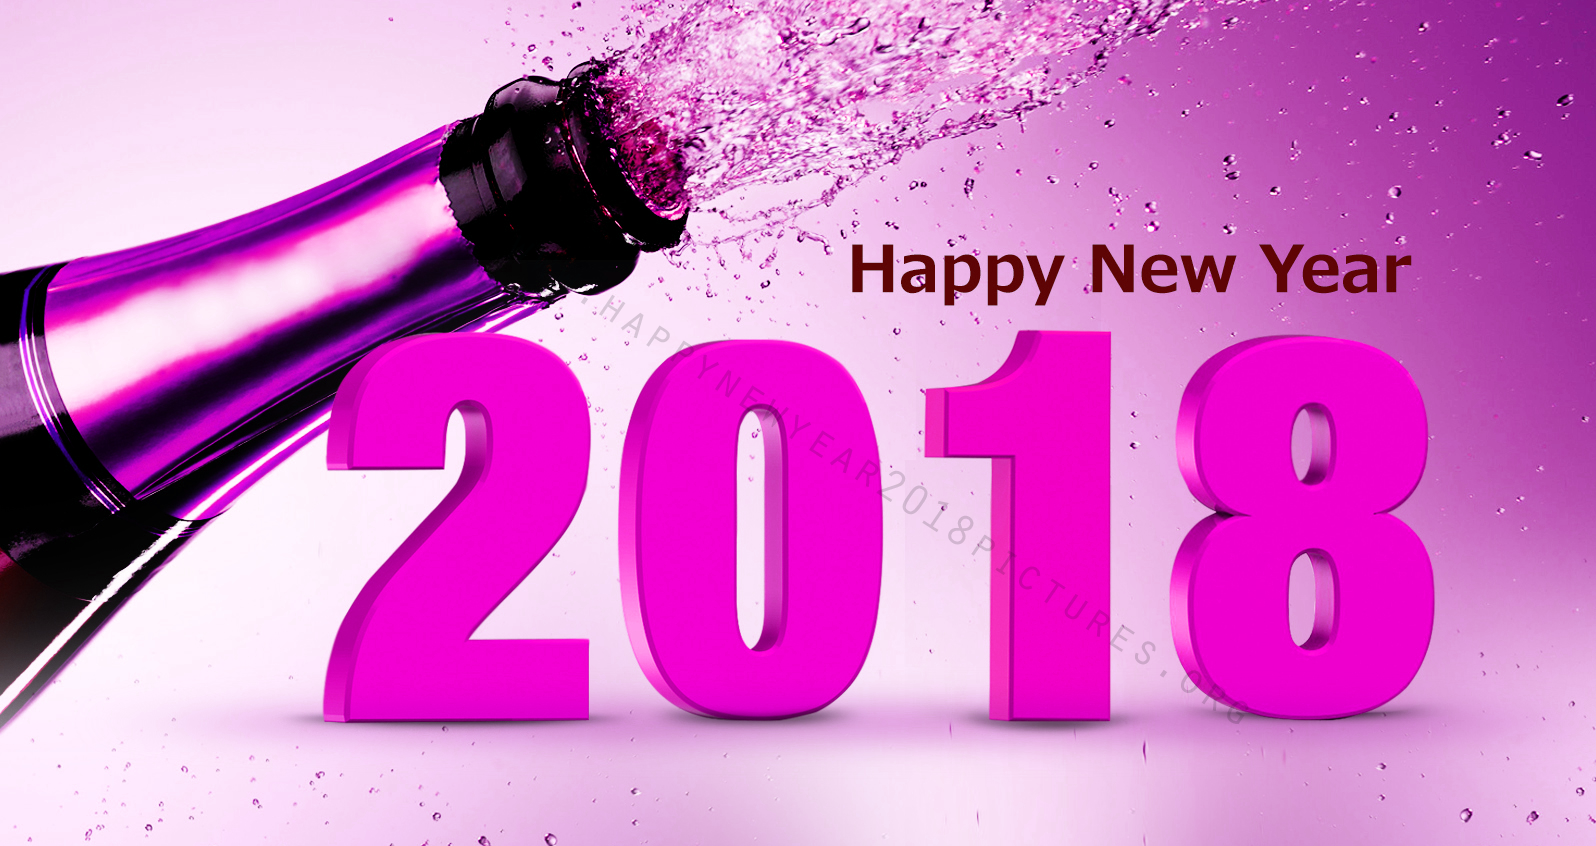 Happy-New-Year-2018-bottle